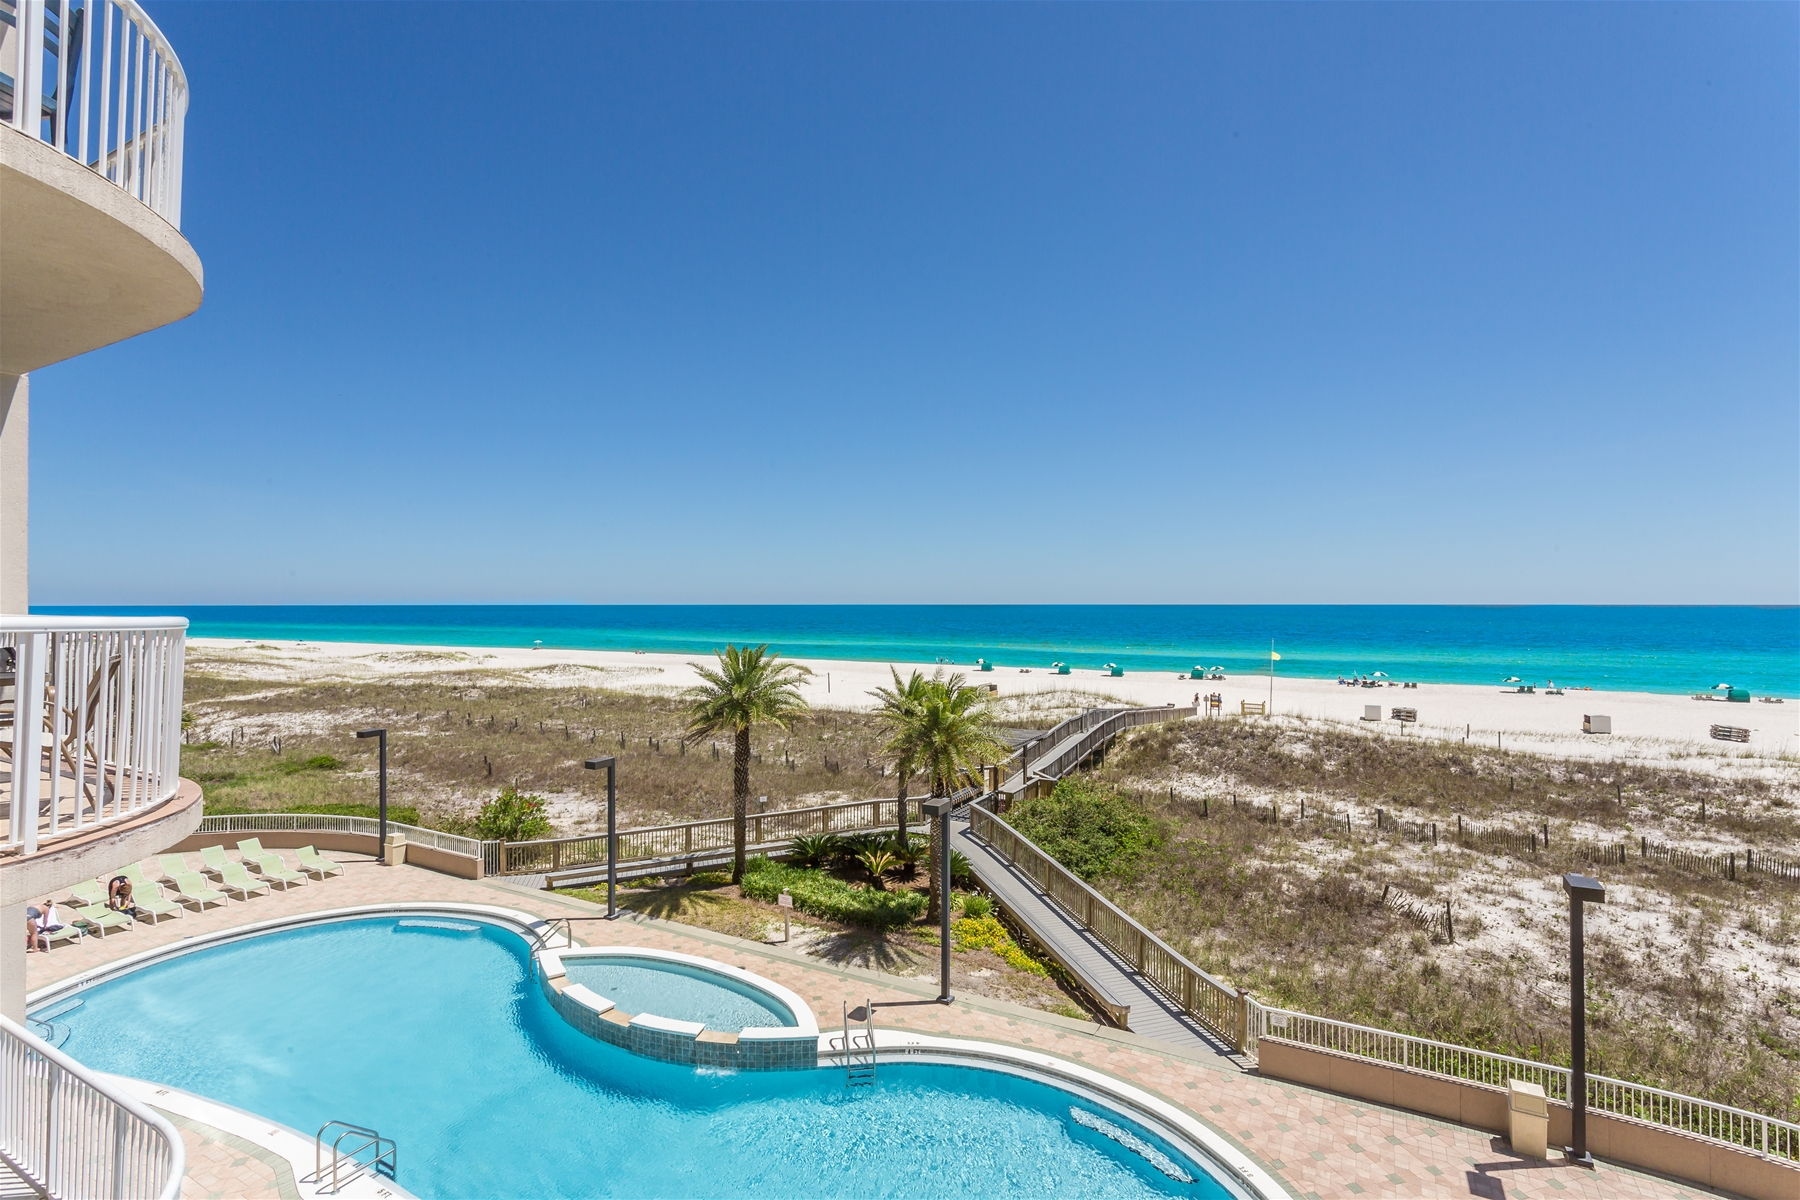 elevated condo view of the beachfront pool and beach access at Spanish Key, Perdido Key